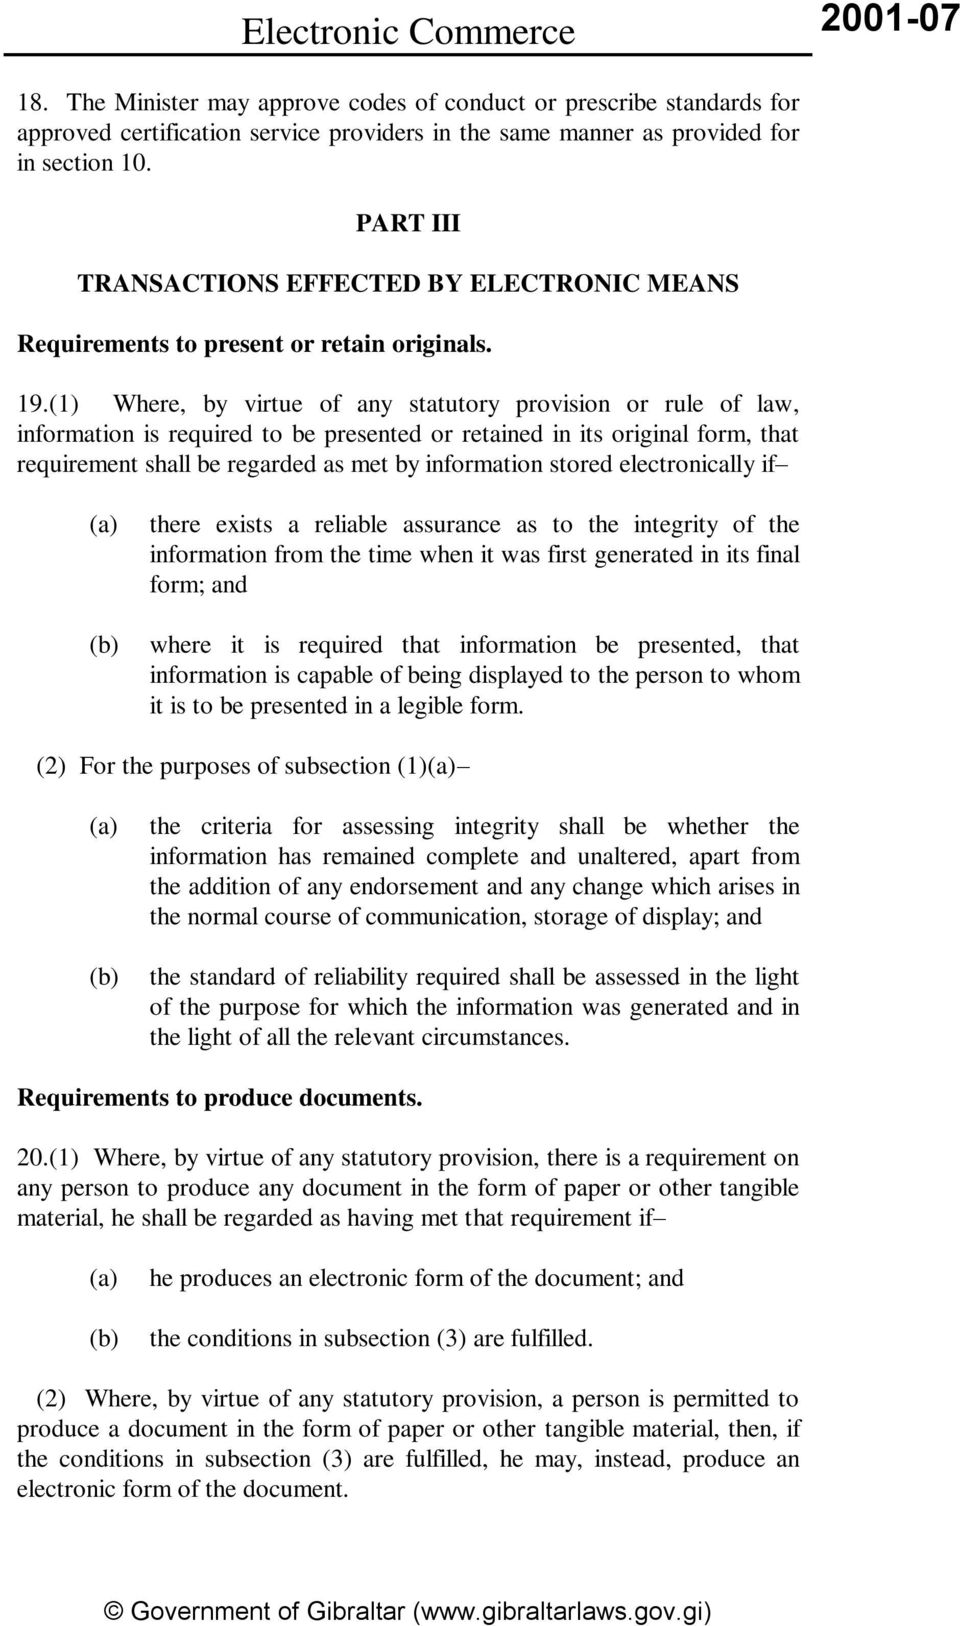 (1) Where, by virtue of any statutory provision or rule of law, information is required to be presented or retained in its original form, that requirement shall be regarded as met by information